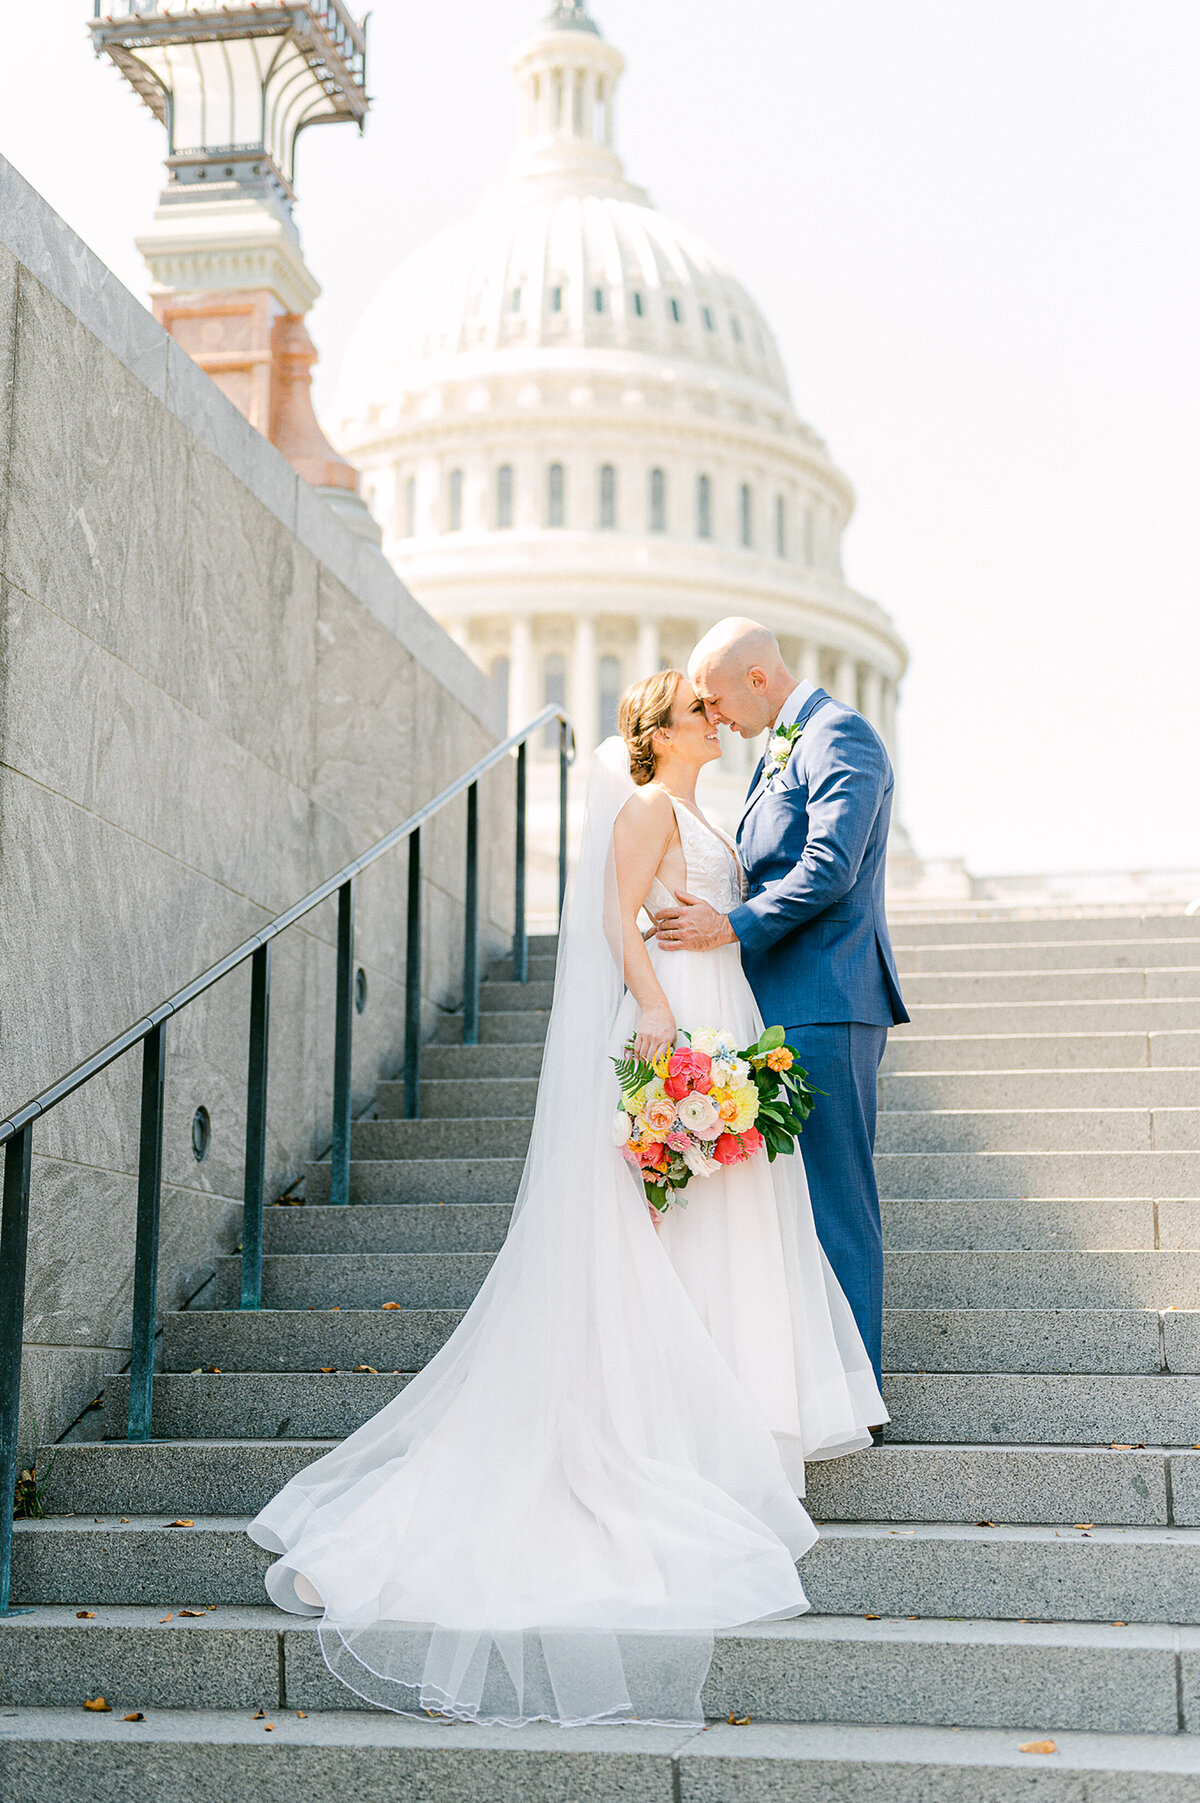 Jennifer Bosak Photography - DC Area Wedding Photography - DC, Virginia, Maryland - Jeanna + Michael - Decatur House Wedding - 70